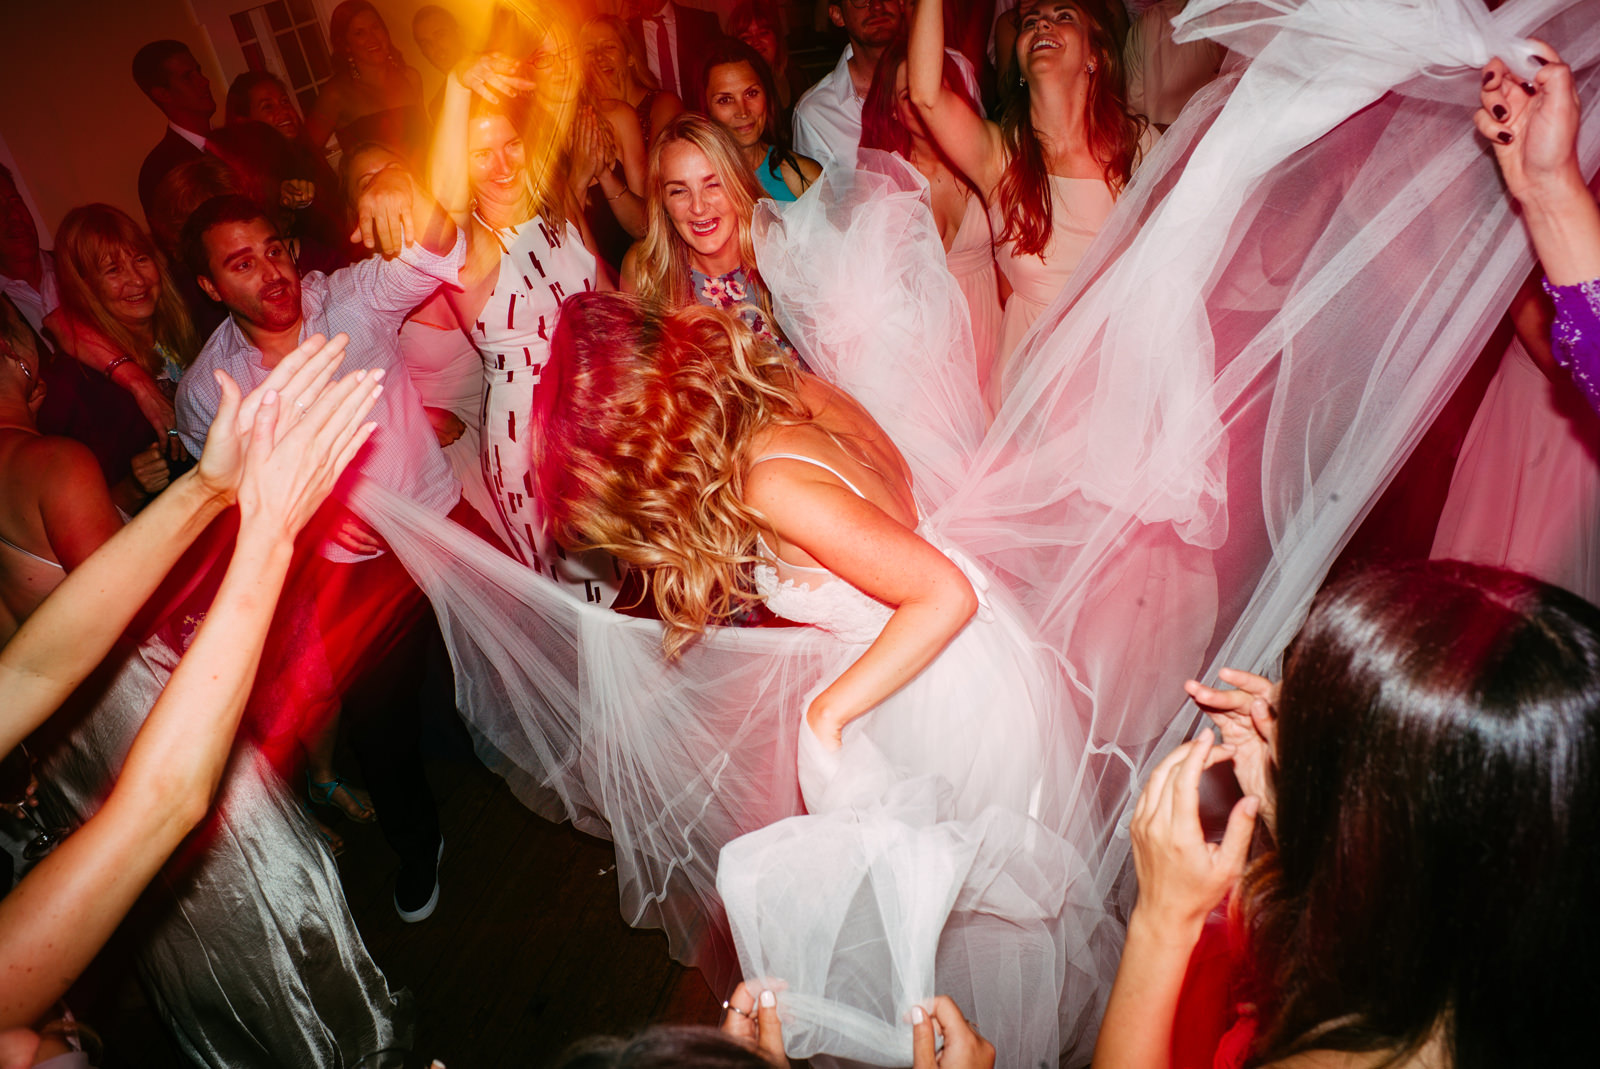 030-colorful-epic-wedding-dance-photo.jpg